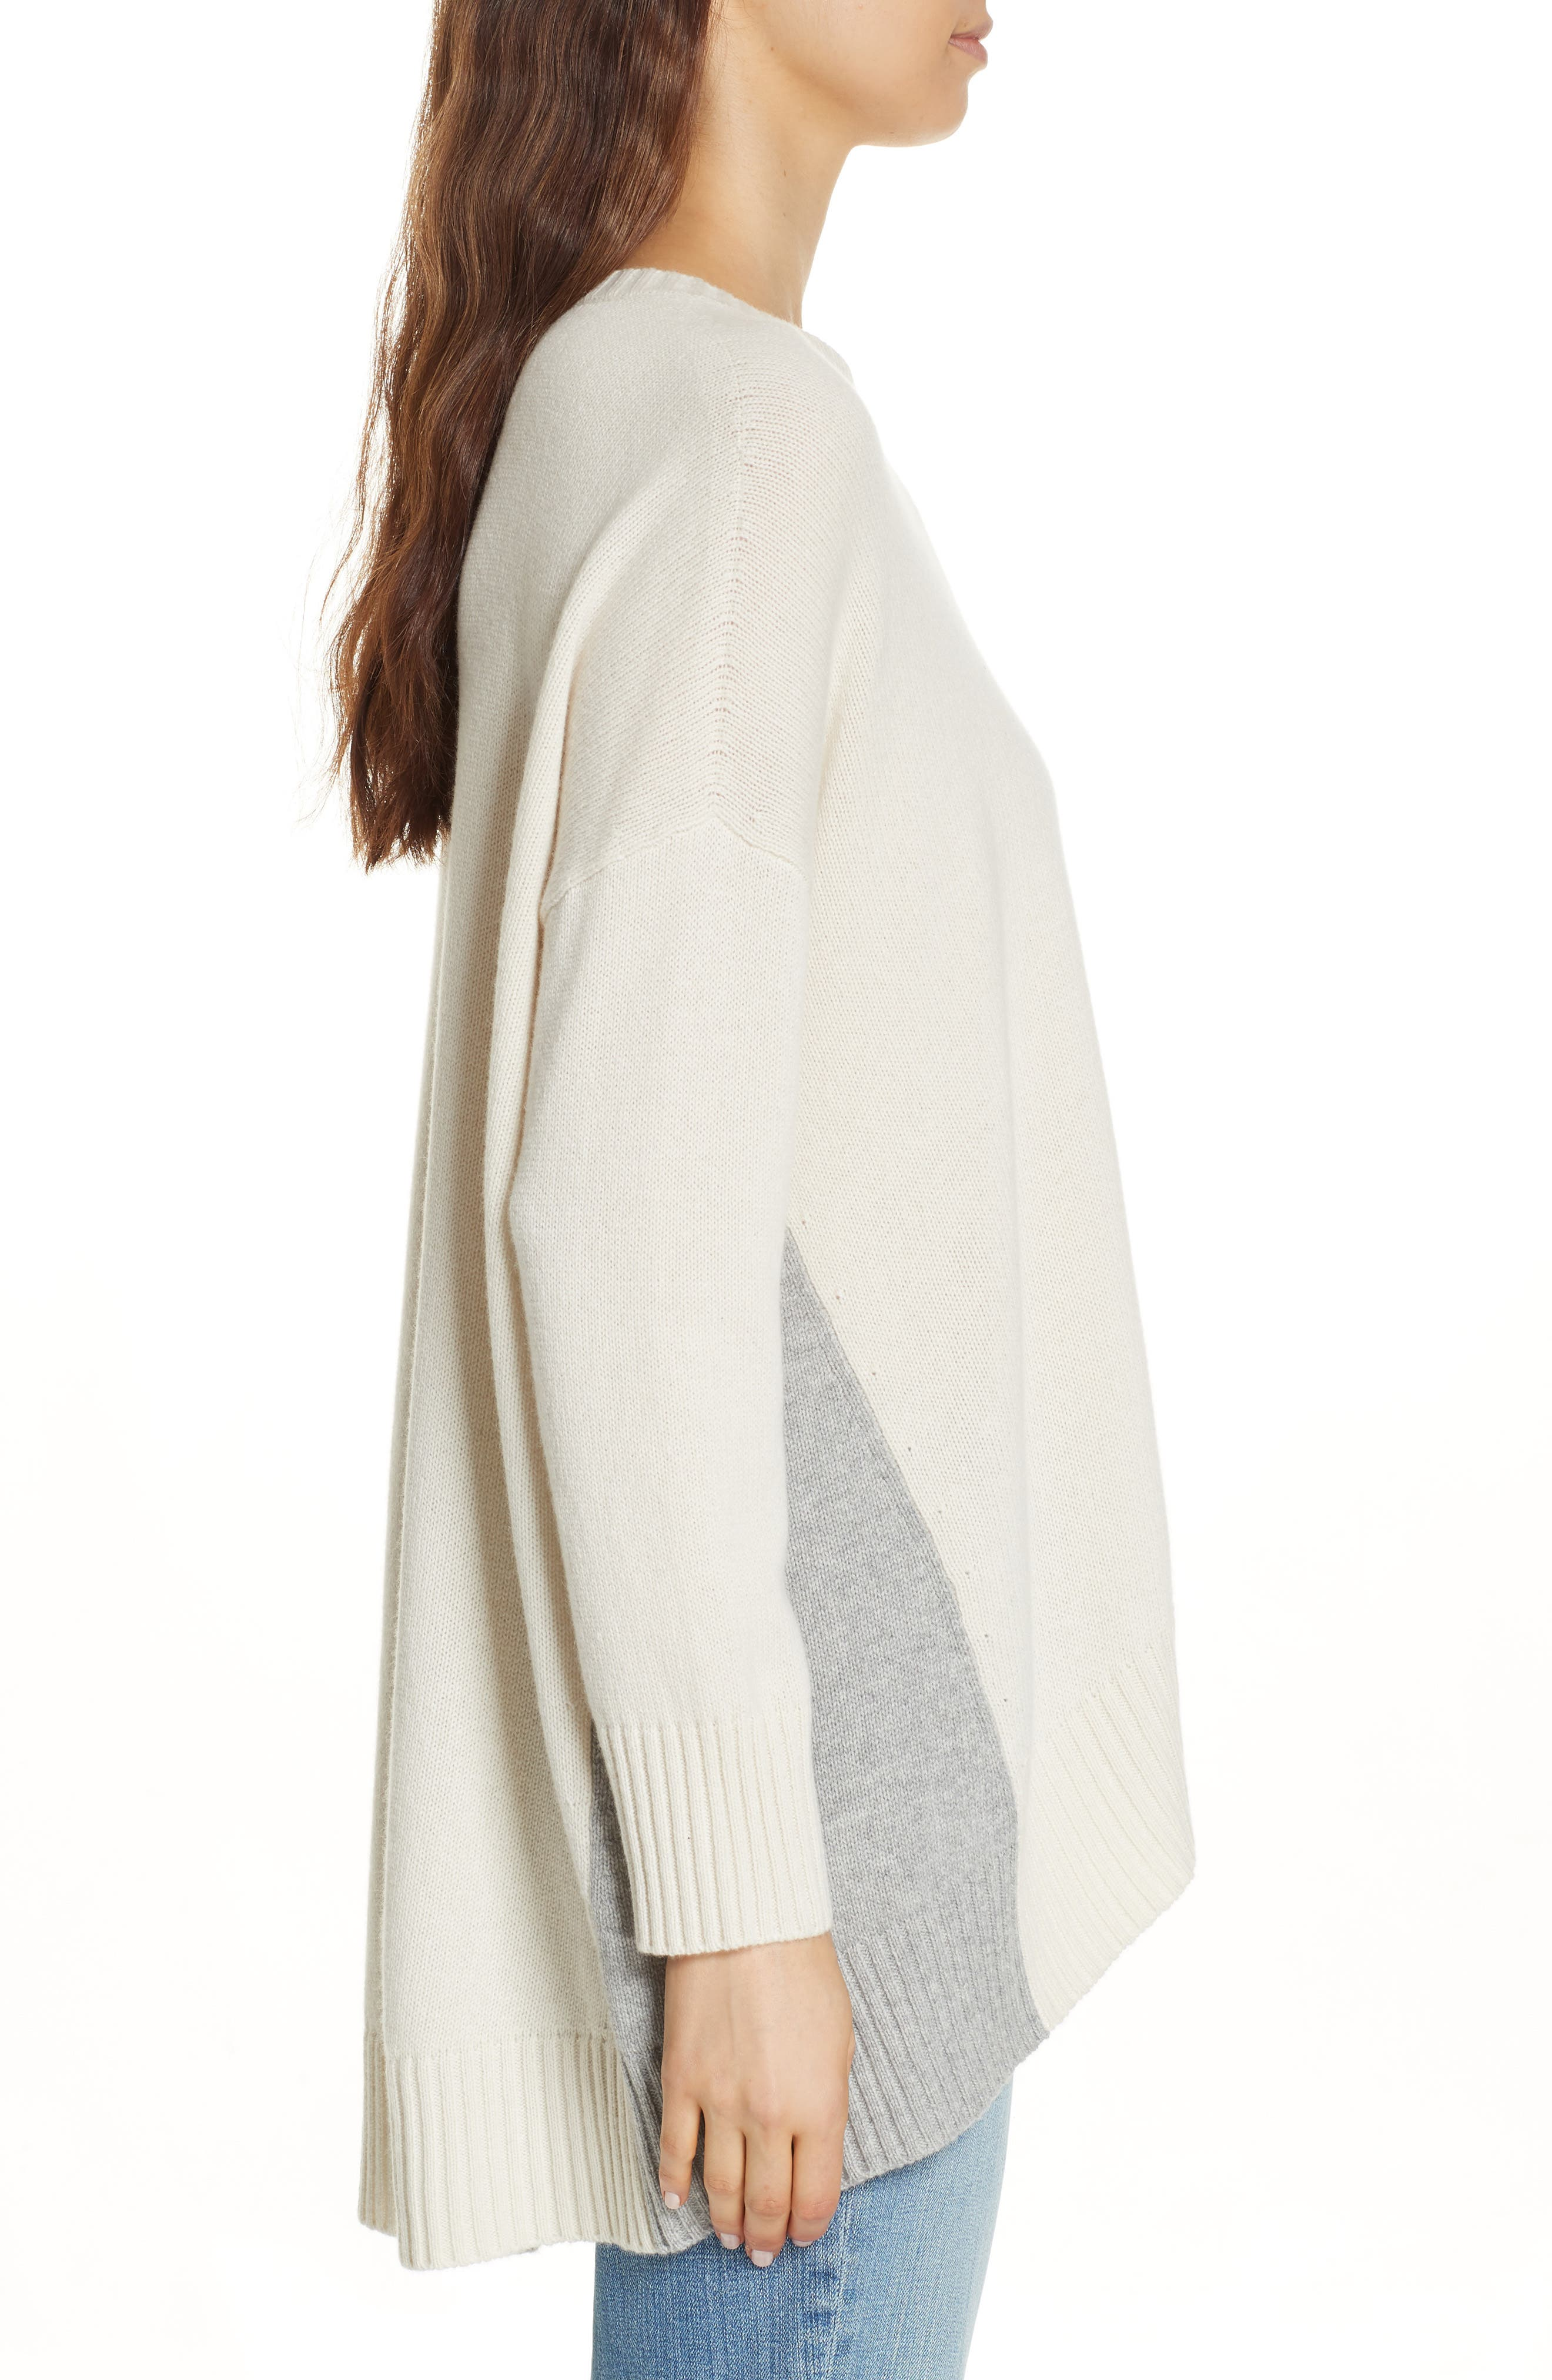 Oversize Cashmere & Wool Sweater,                             Alternate thumbnail 3, color,                             SOFT WHITE/ DARK PEARL